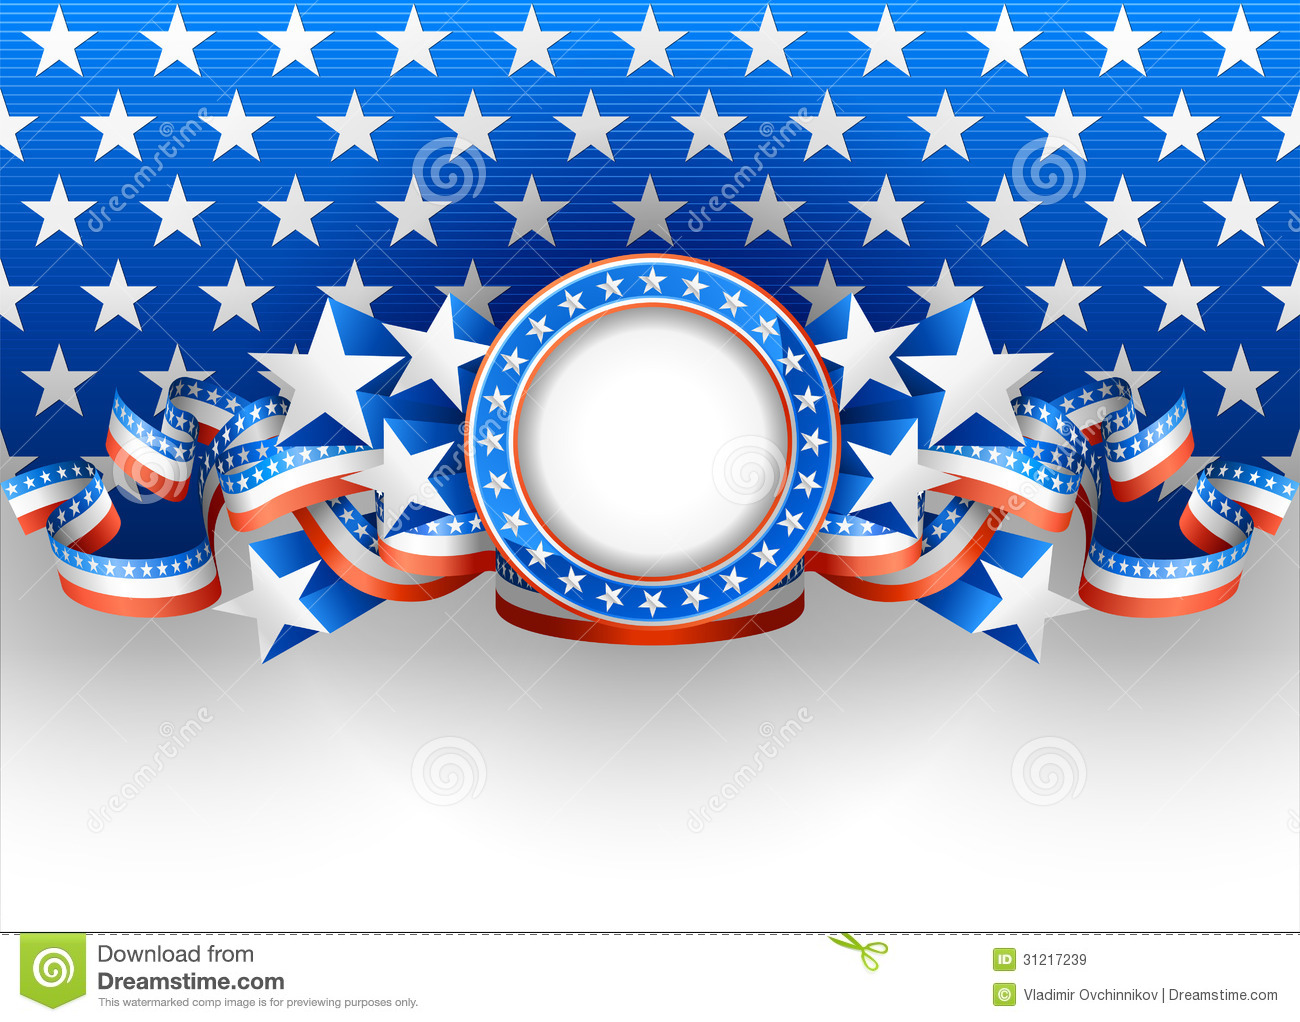 American Background Royalty Free Stock Images - Image: 31217239